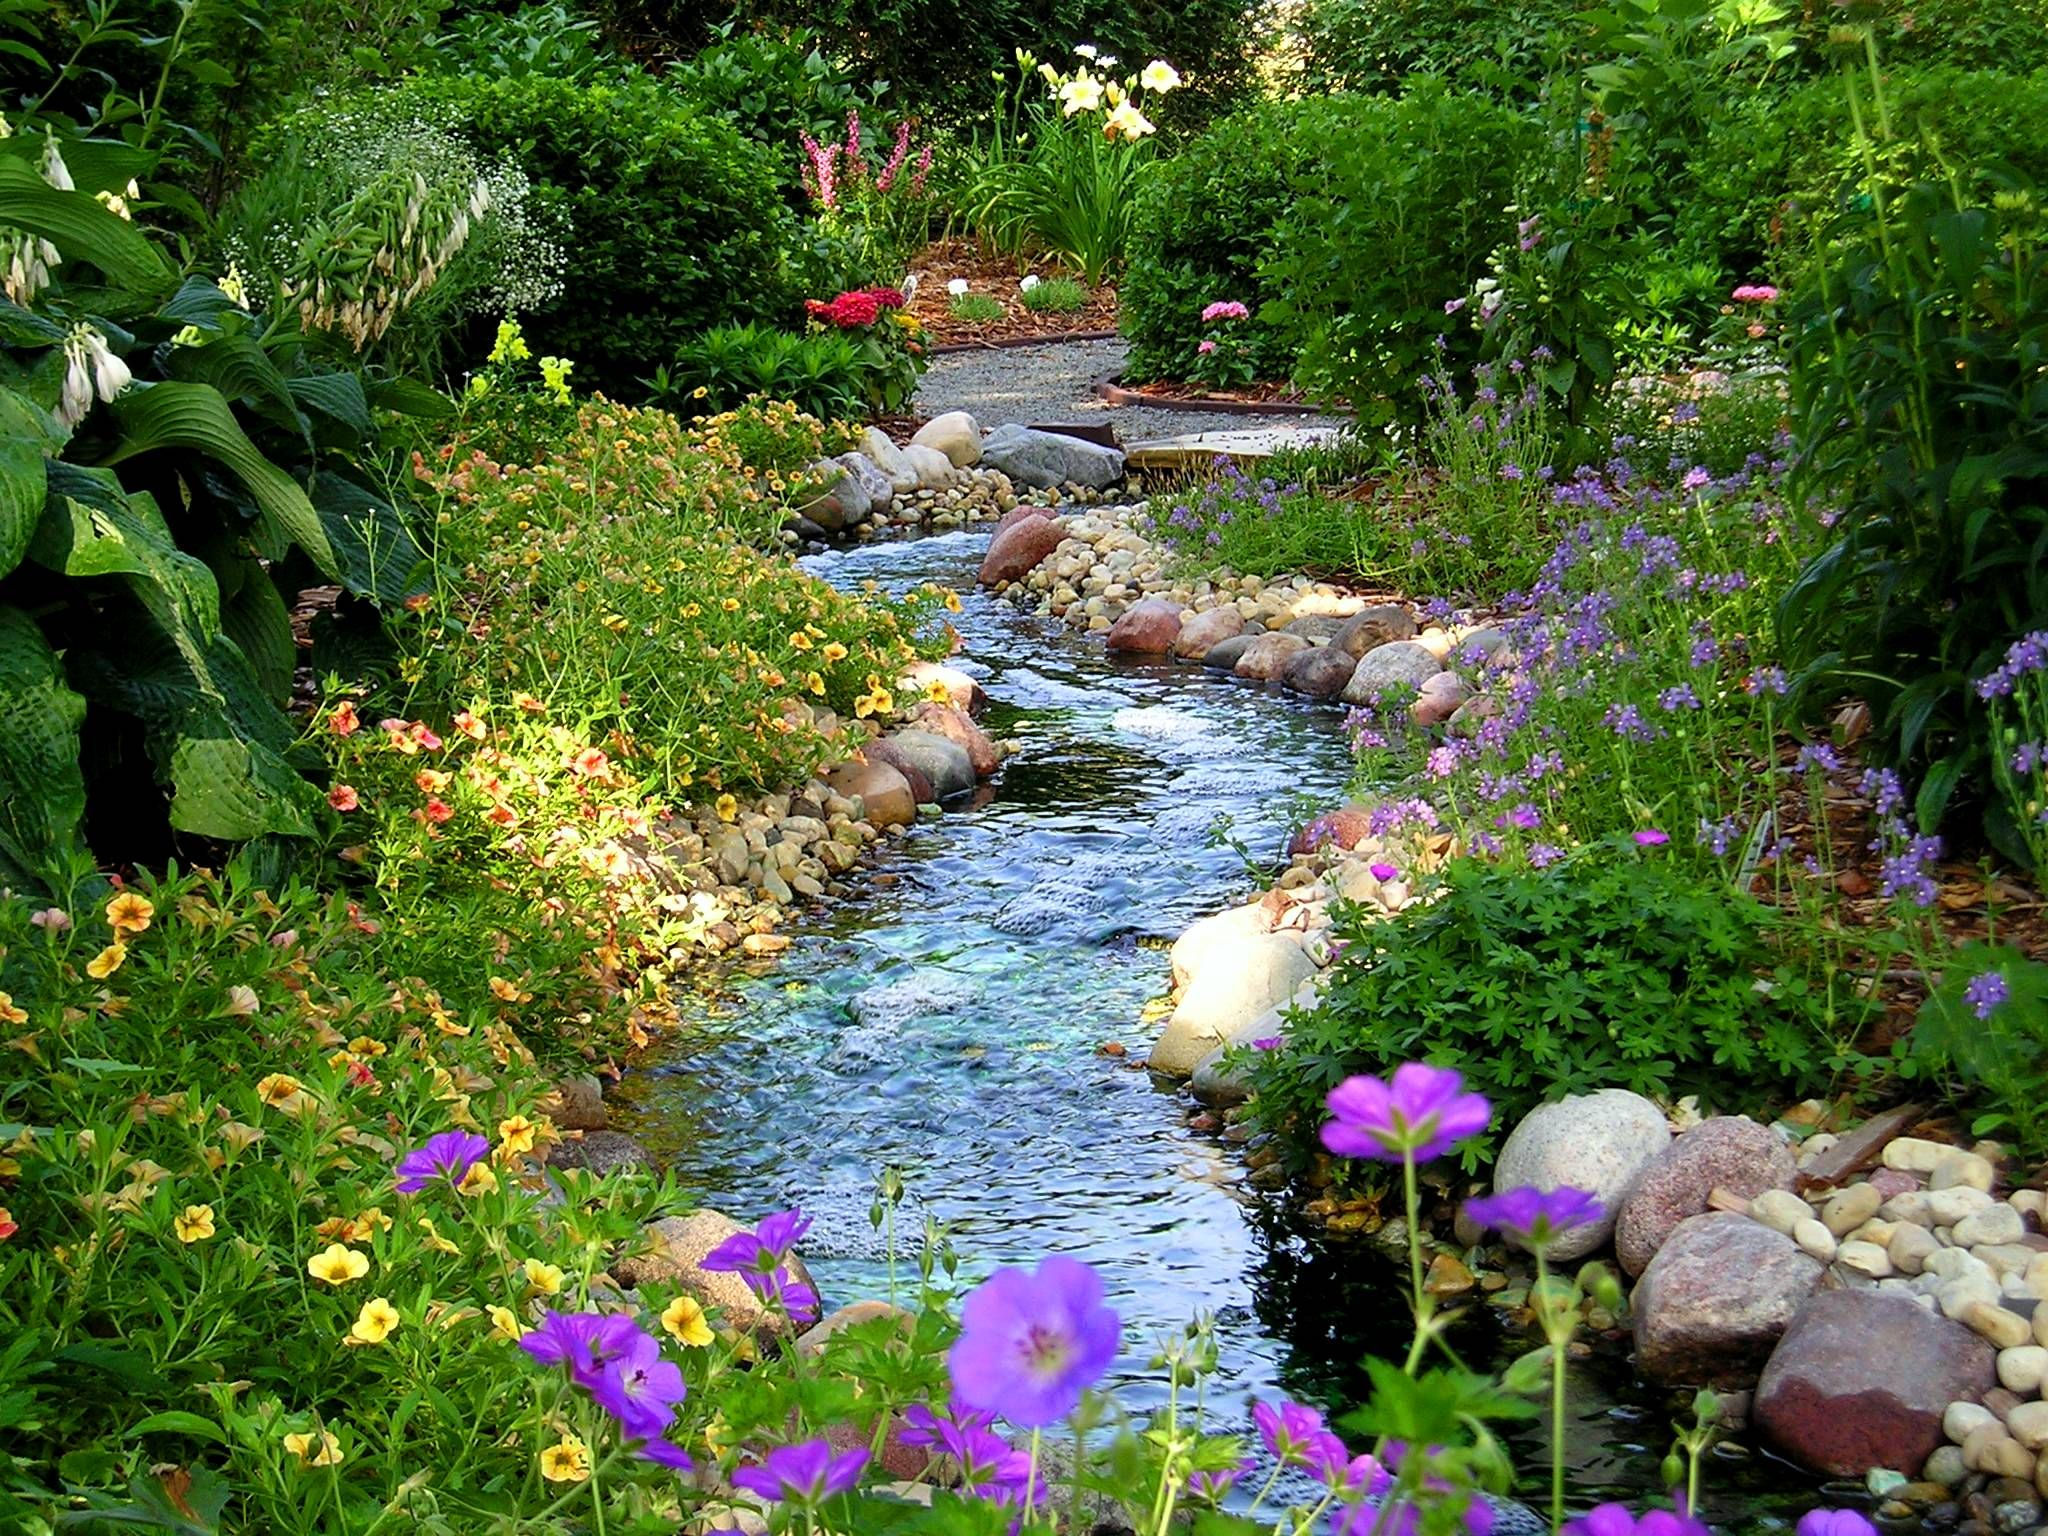 A long stream bed meanders through the garden Garden